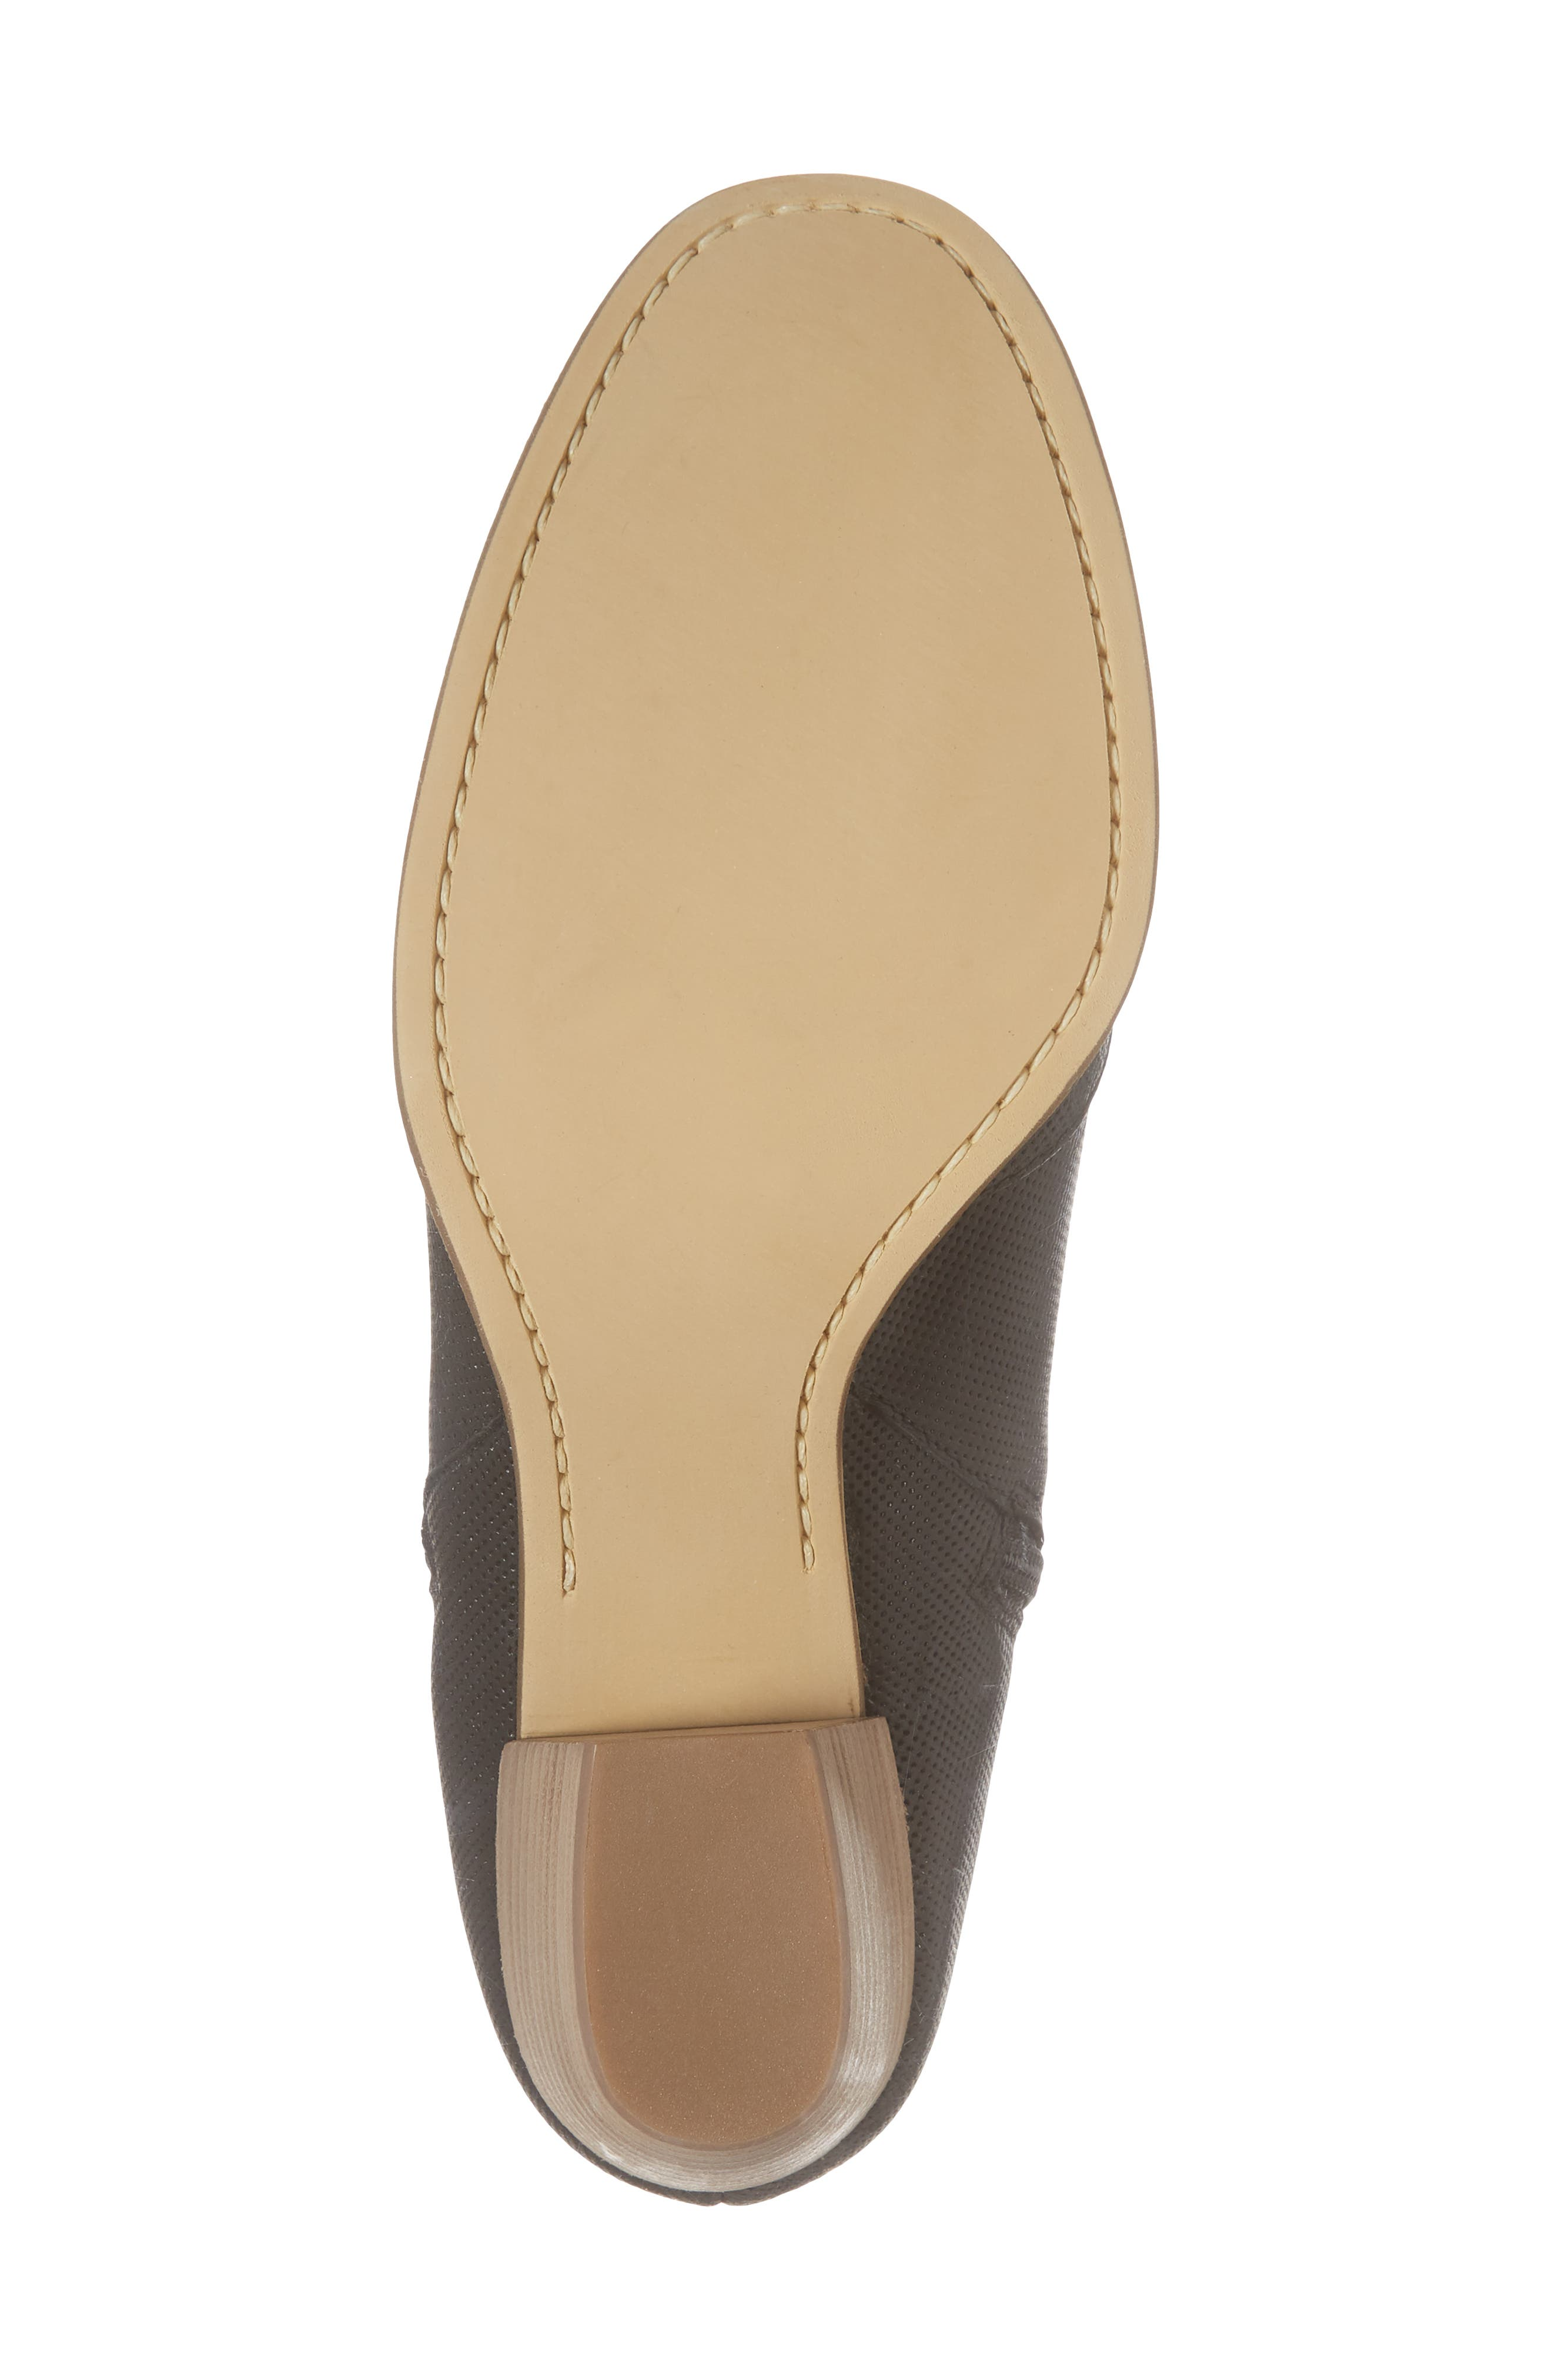 Robin Bootie,                             Alternate thumbnail 6, color,                             BLACK LEATHER